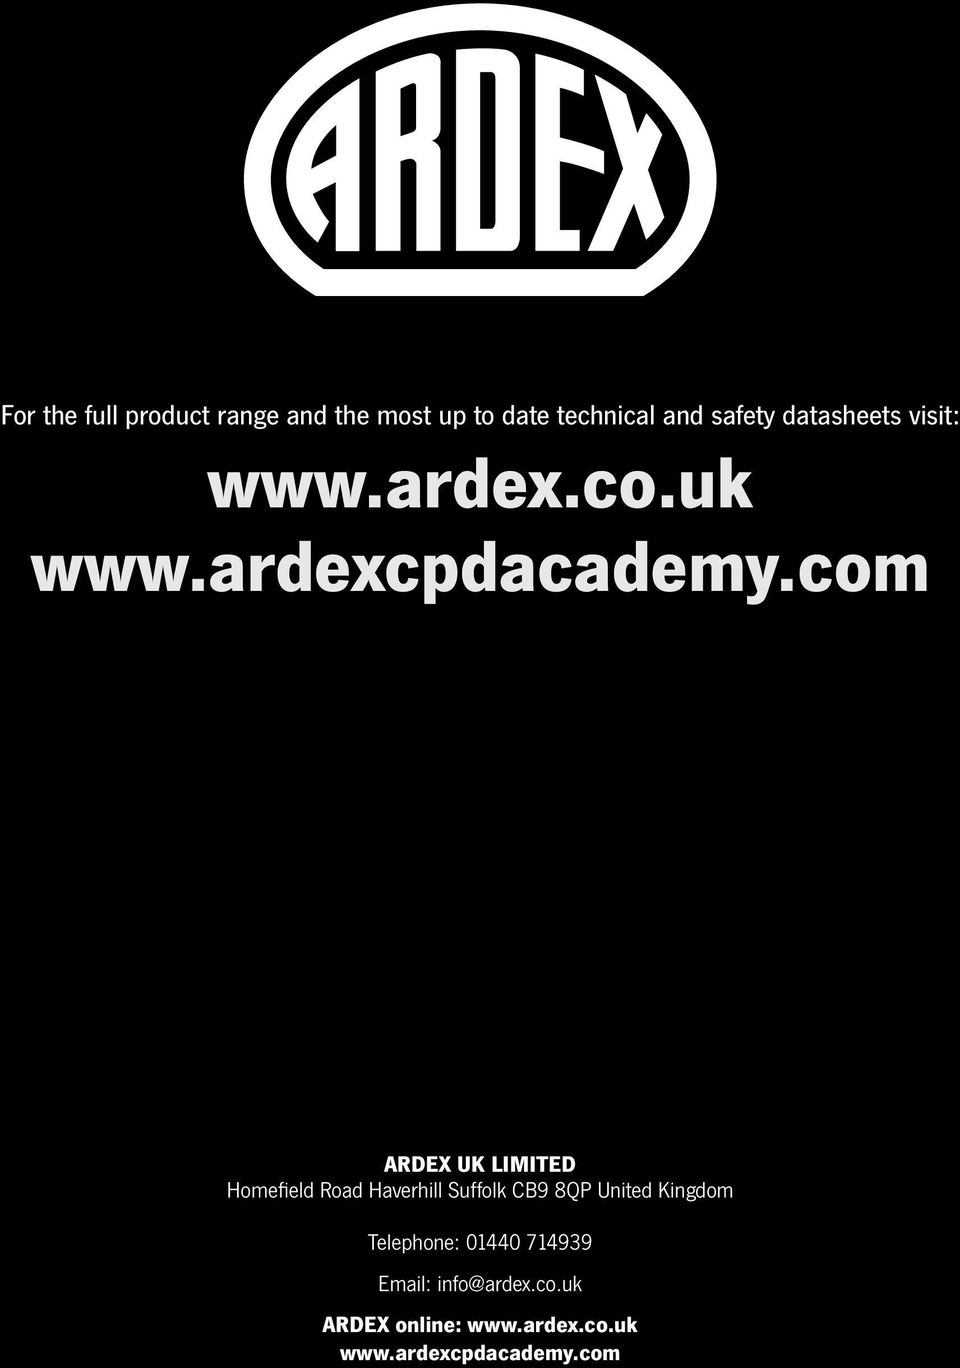 com ARDEX UK LIMITED Homefield Road Haverhill Suffolk CB9 8QP United